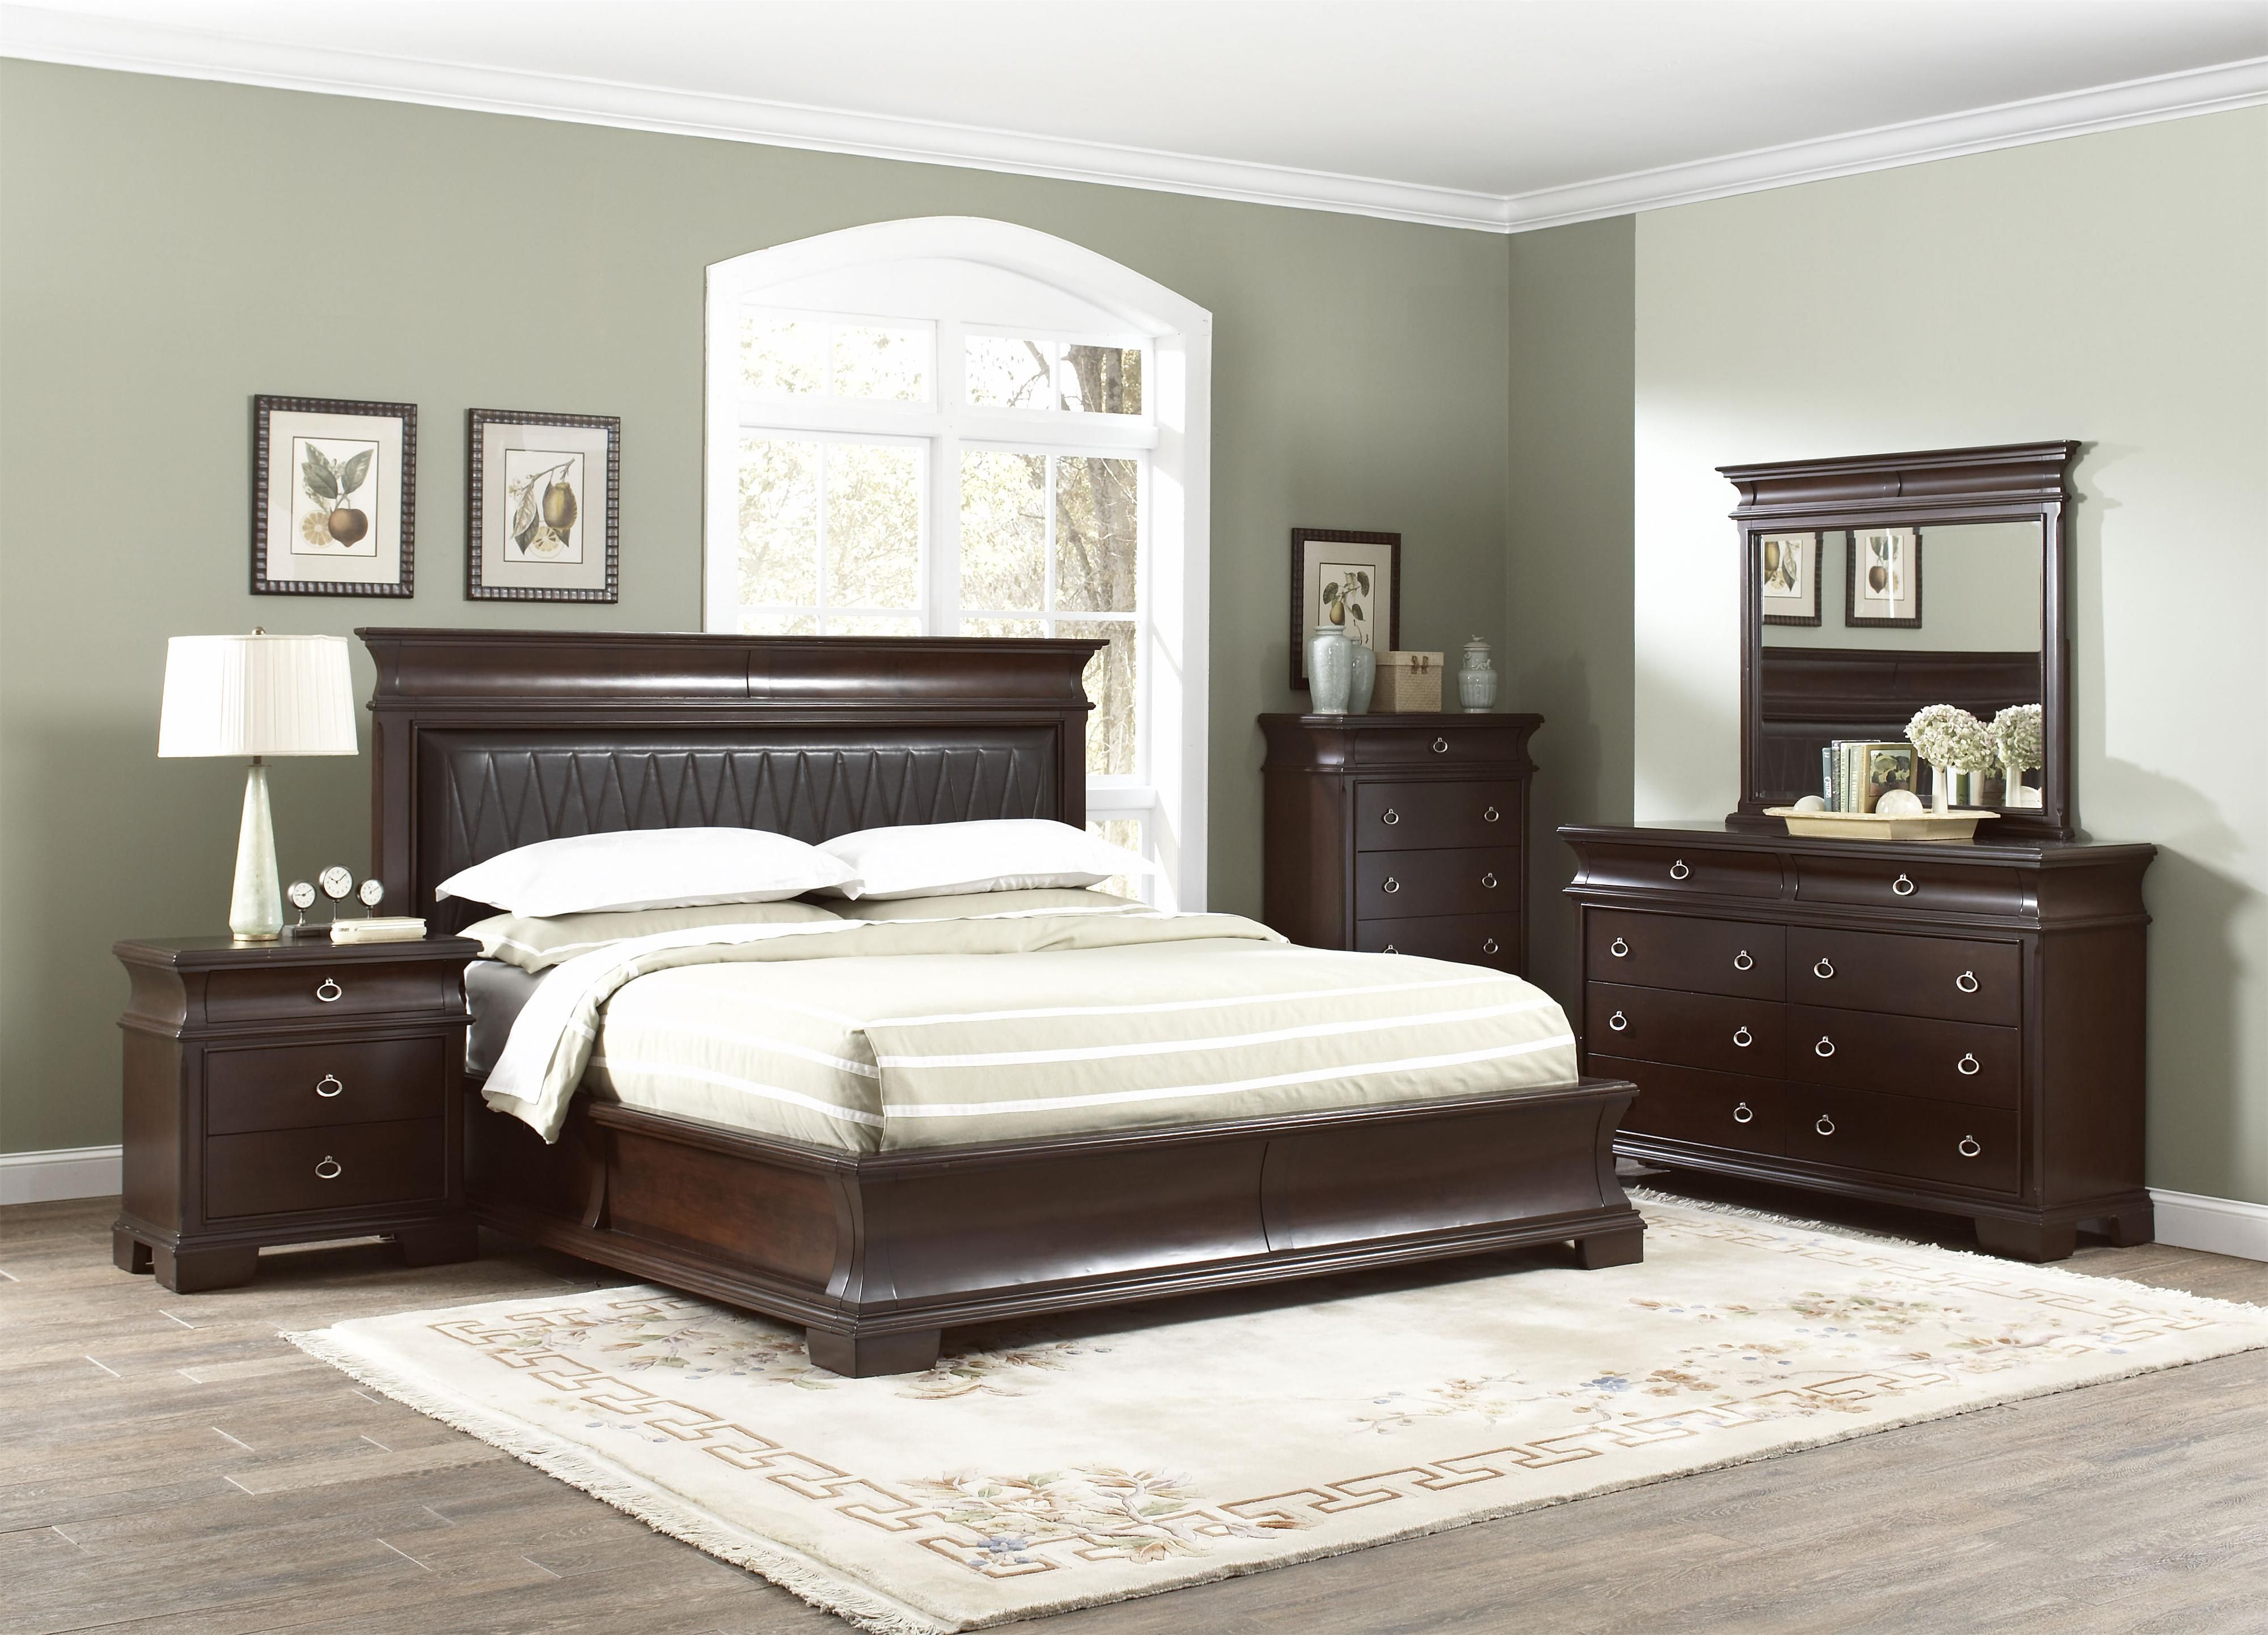 Coaster Fine Furniture Kurtis Bedroom Group Available In Business Days From  Jacku0027s Warehouse